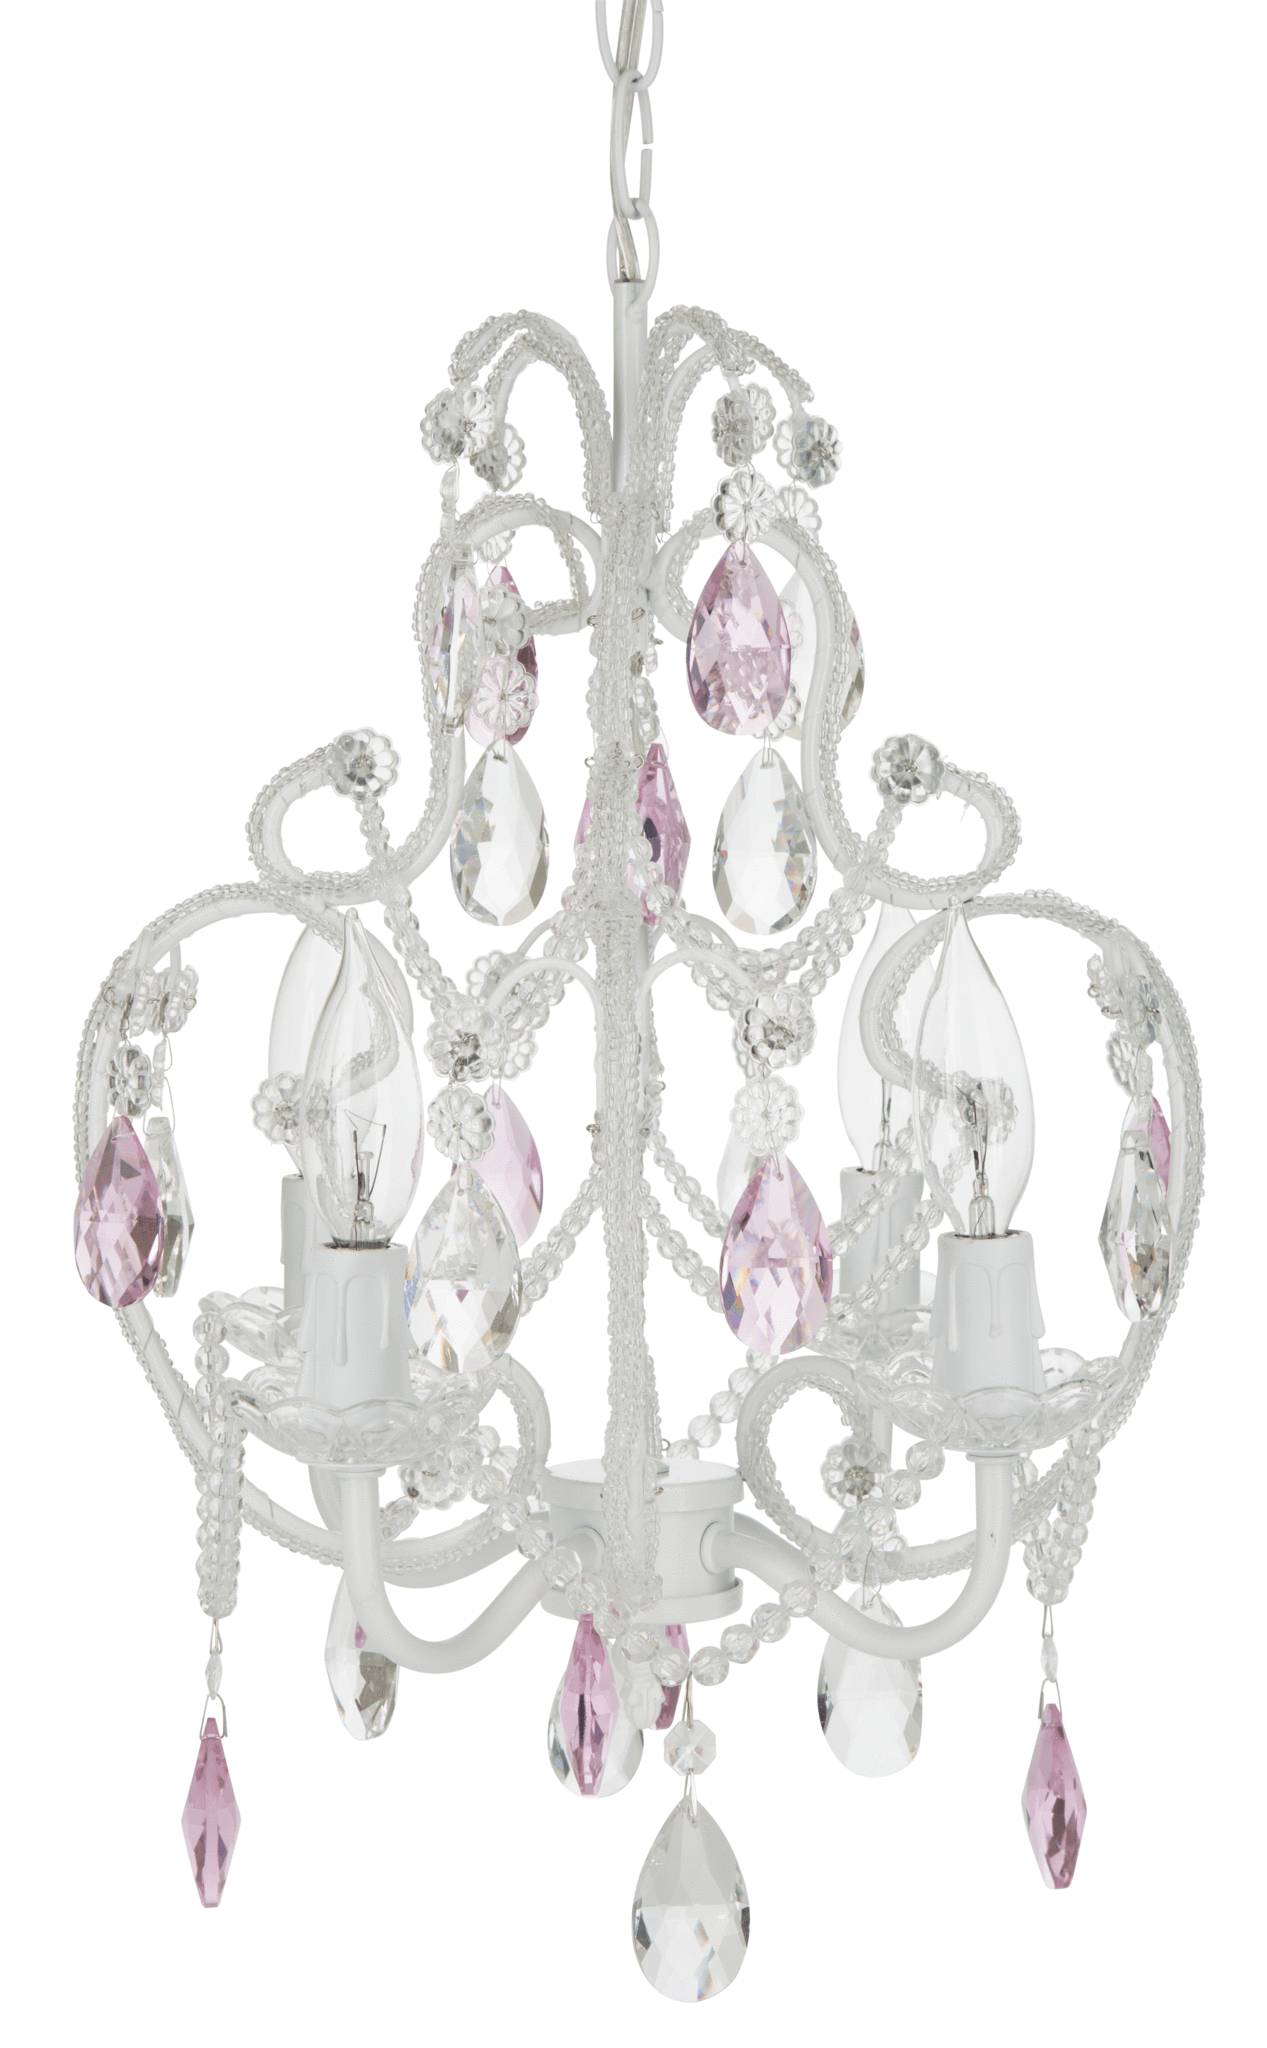 4 Light Beaded Crystal Plug In Chandelier White W Pink Crystals